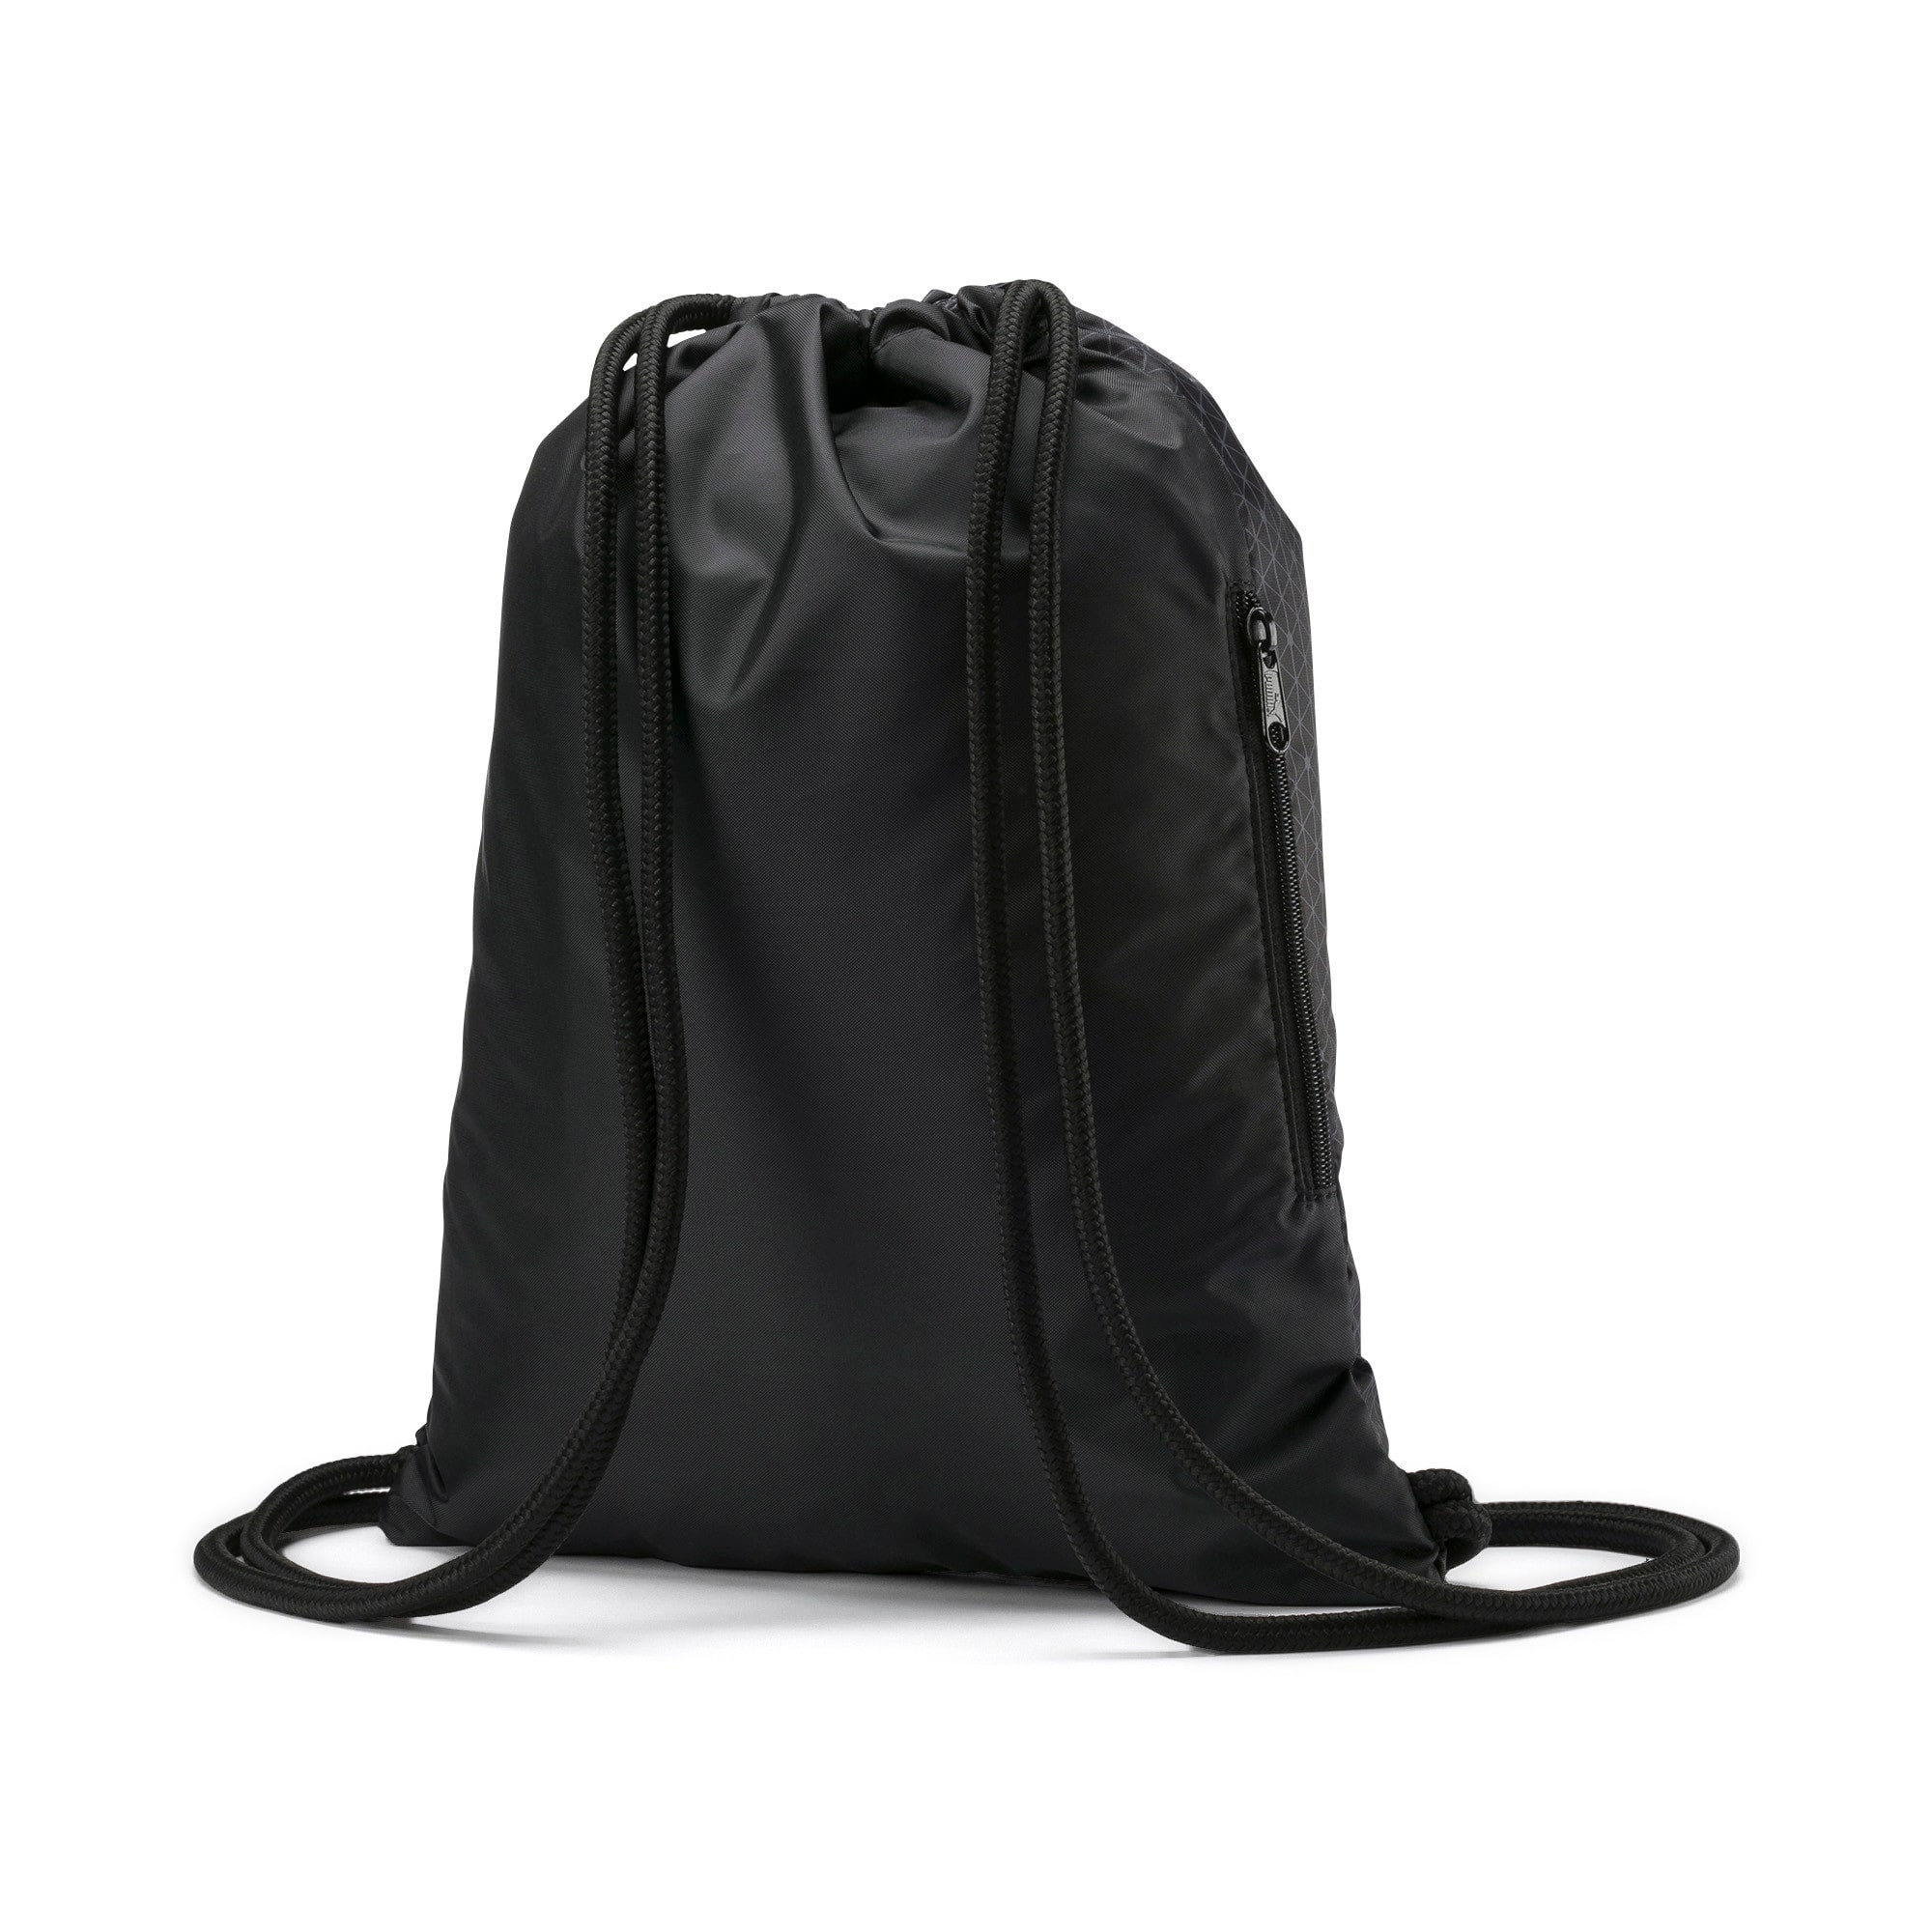 Thumbnail 2 of Beta Gym Bag, Puma Black-CASTLEROCK, medium-IND